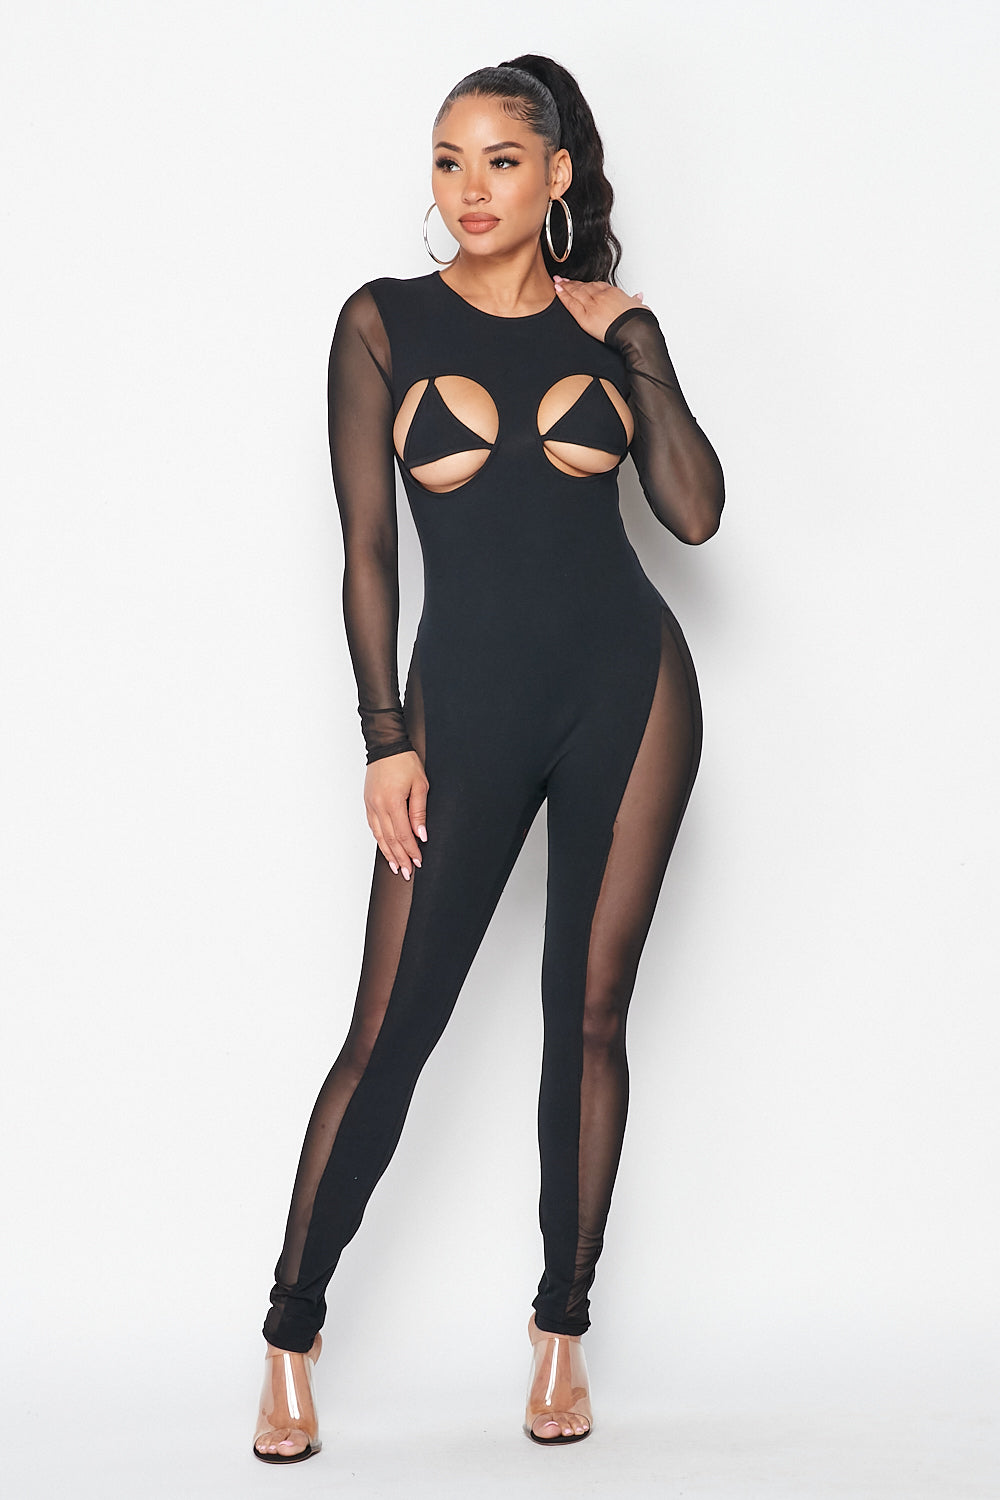 Baddies Only Mesh Sleeve Triangle Bikini Jumpsuit in Black - Fashion House USA